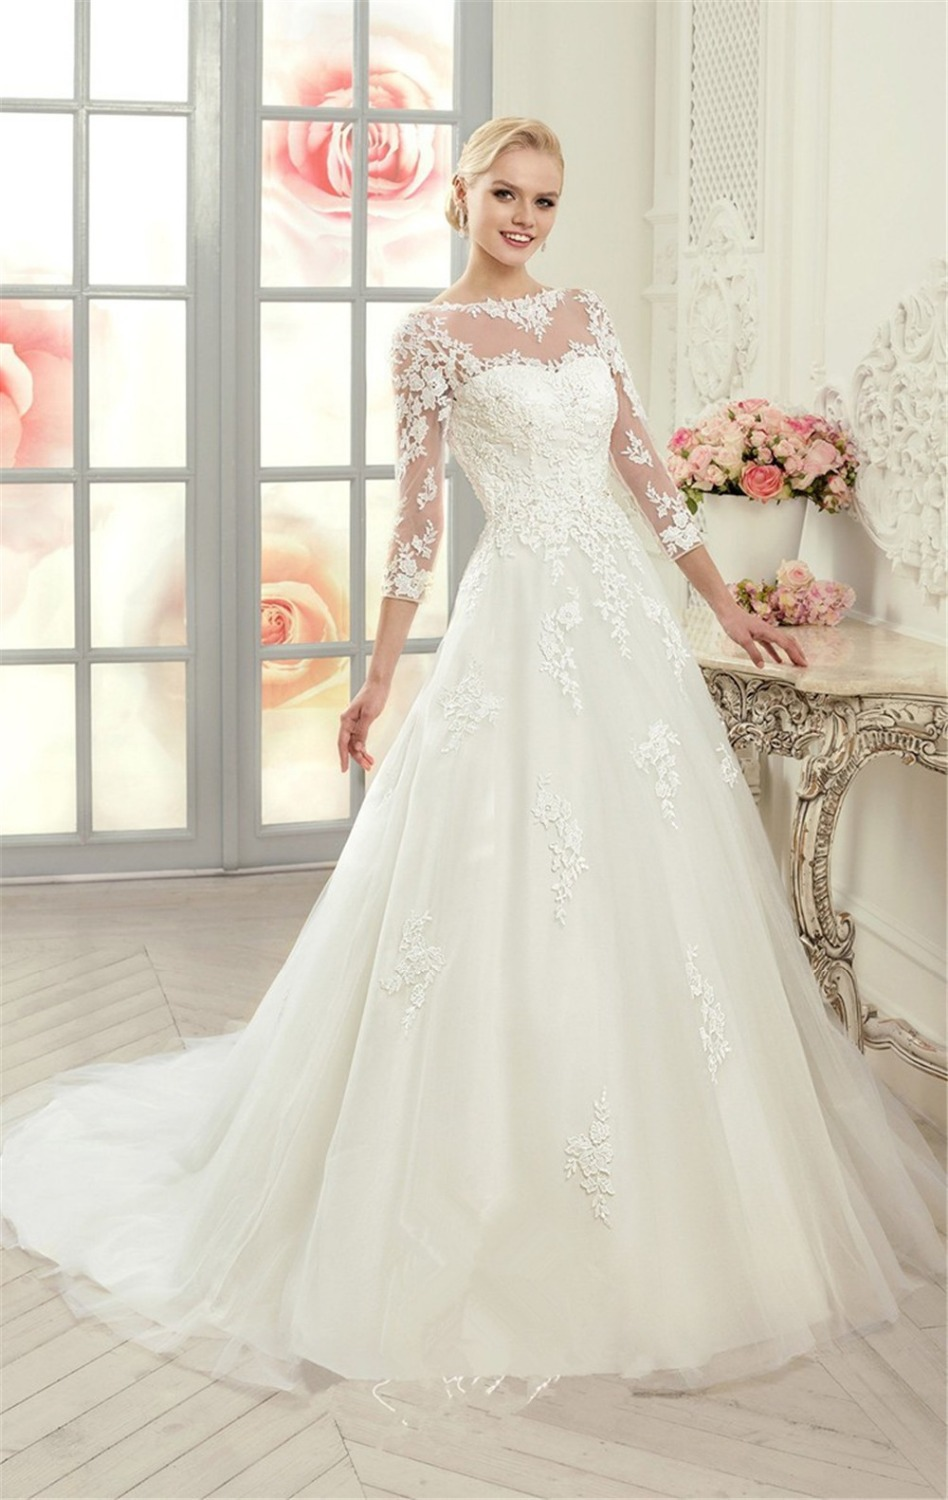 Mansa 2015 lace a line wedding dress with sleeves see for Tulle wedding dress with sleeves